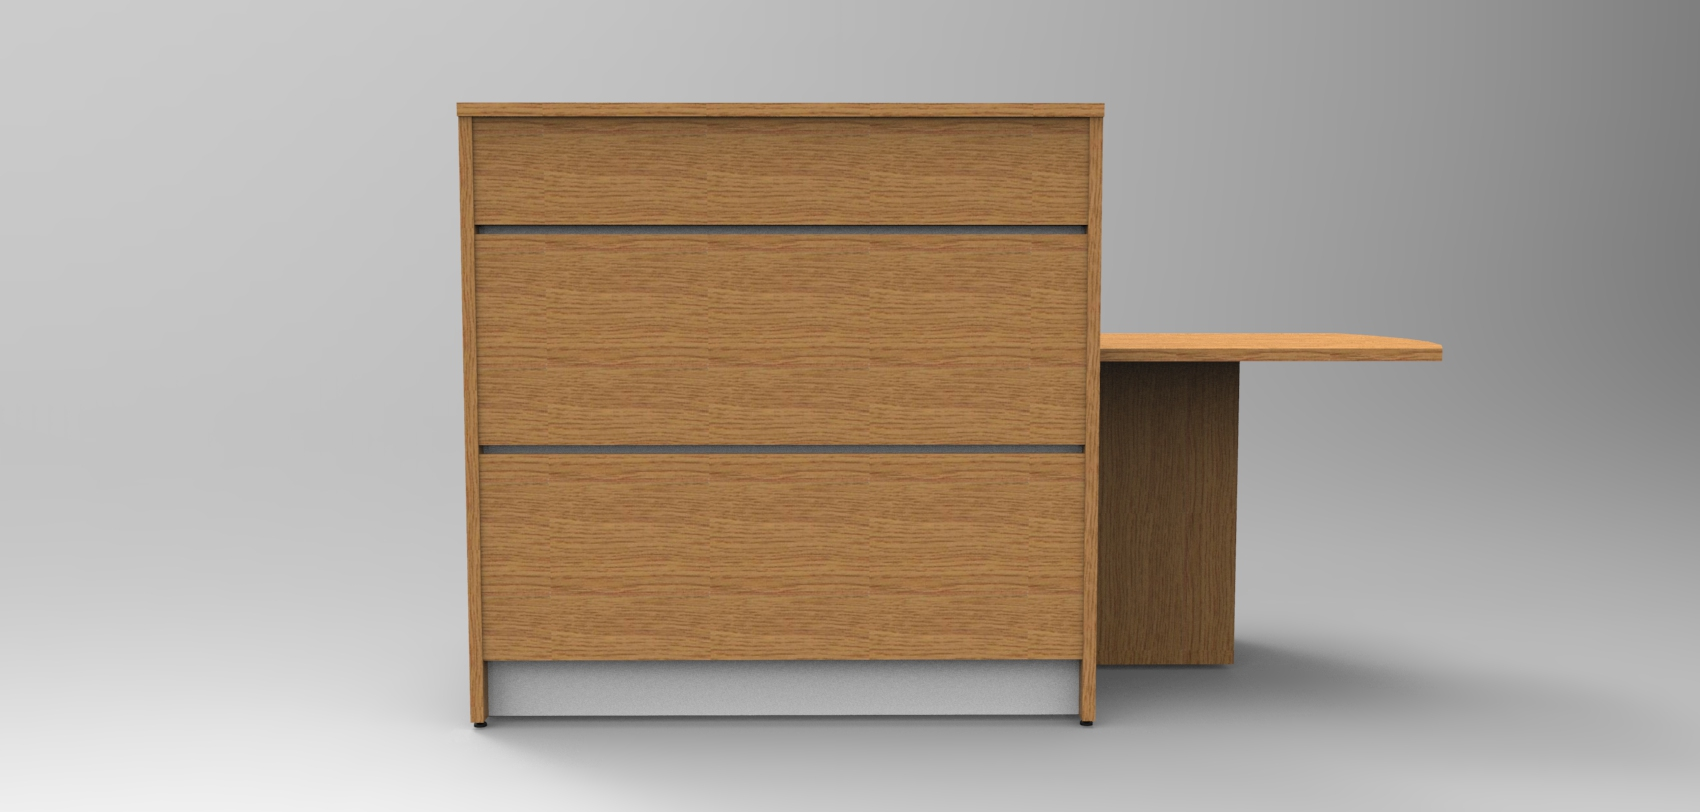 Image 5UA - Tall Union compact Oak reception desk with extension - front view